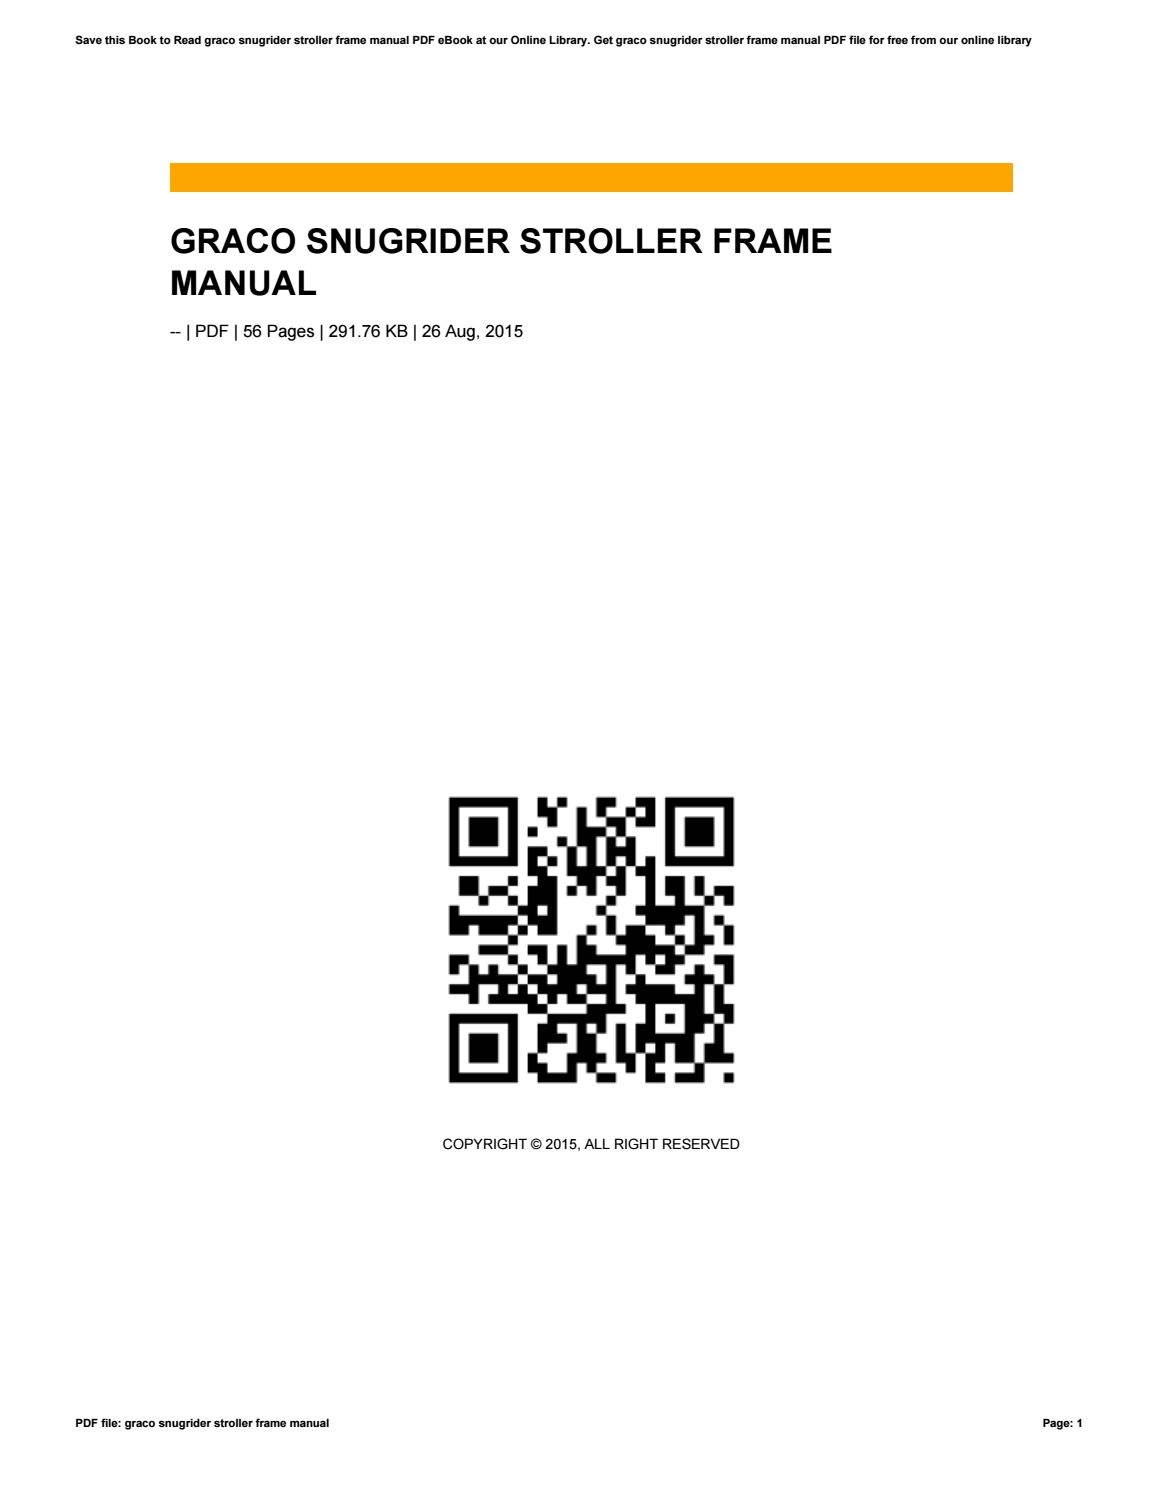 Graco snugrider stroller frame manual by e825 - Issuu